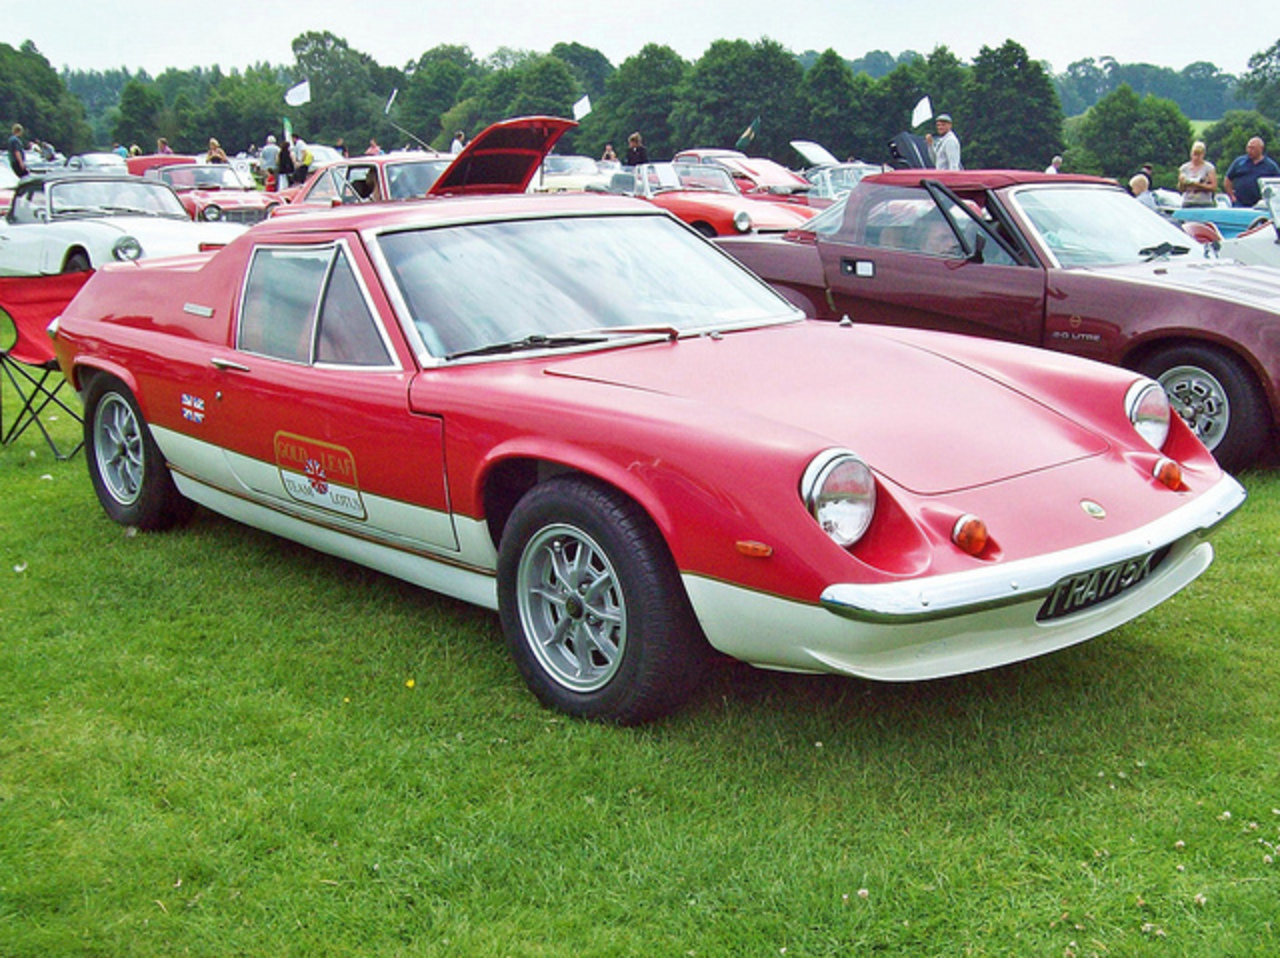 112 Lotus Europa Twin Cam (1972) | Flickr - Photo Sharing!